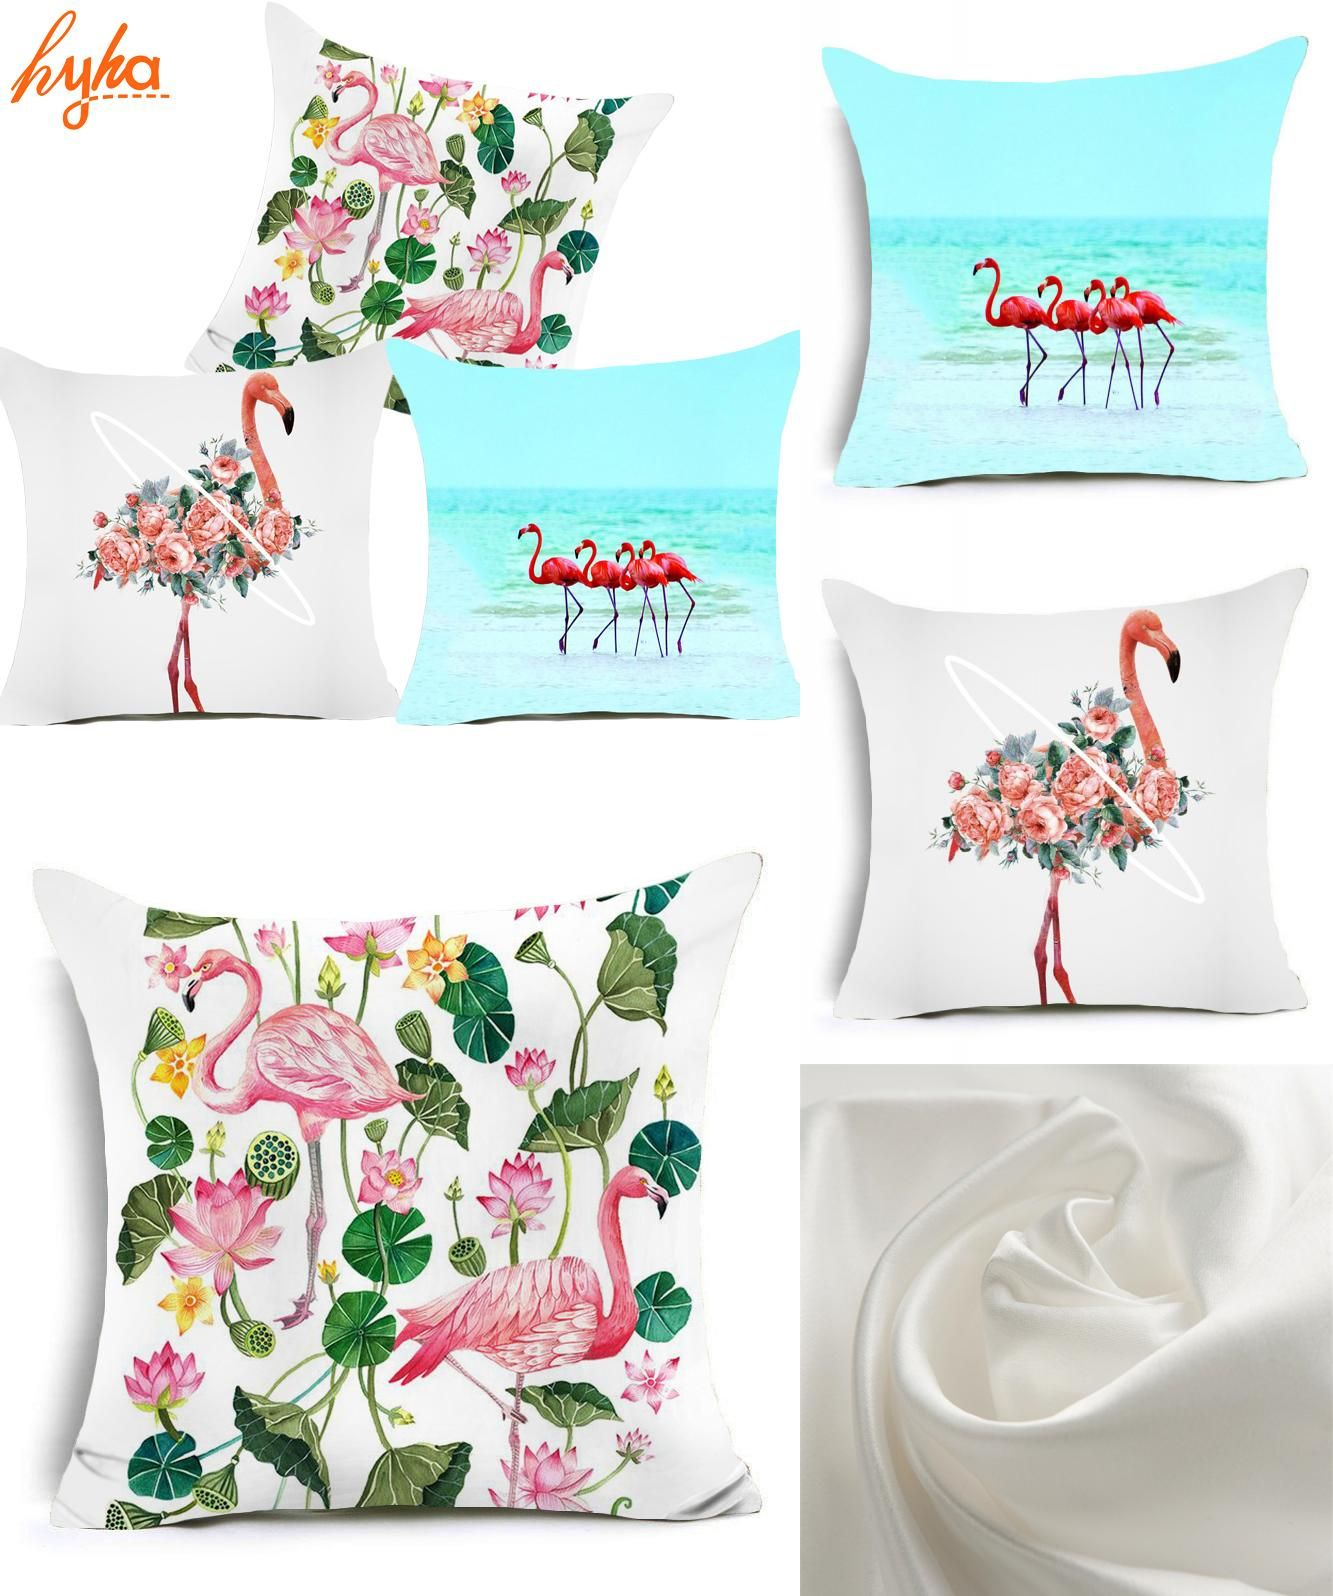 [Visit to Buy] Hyha Flamingo Polyester Cushion Cover Animal Flower Flamingo Home Decorative Pillow Cover for Sofa Car Europe Nordic Home Decor #Advertisement